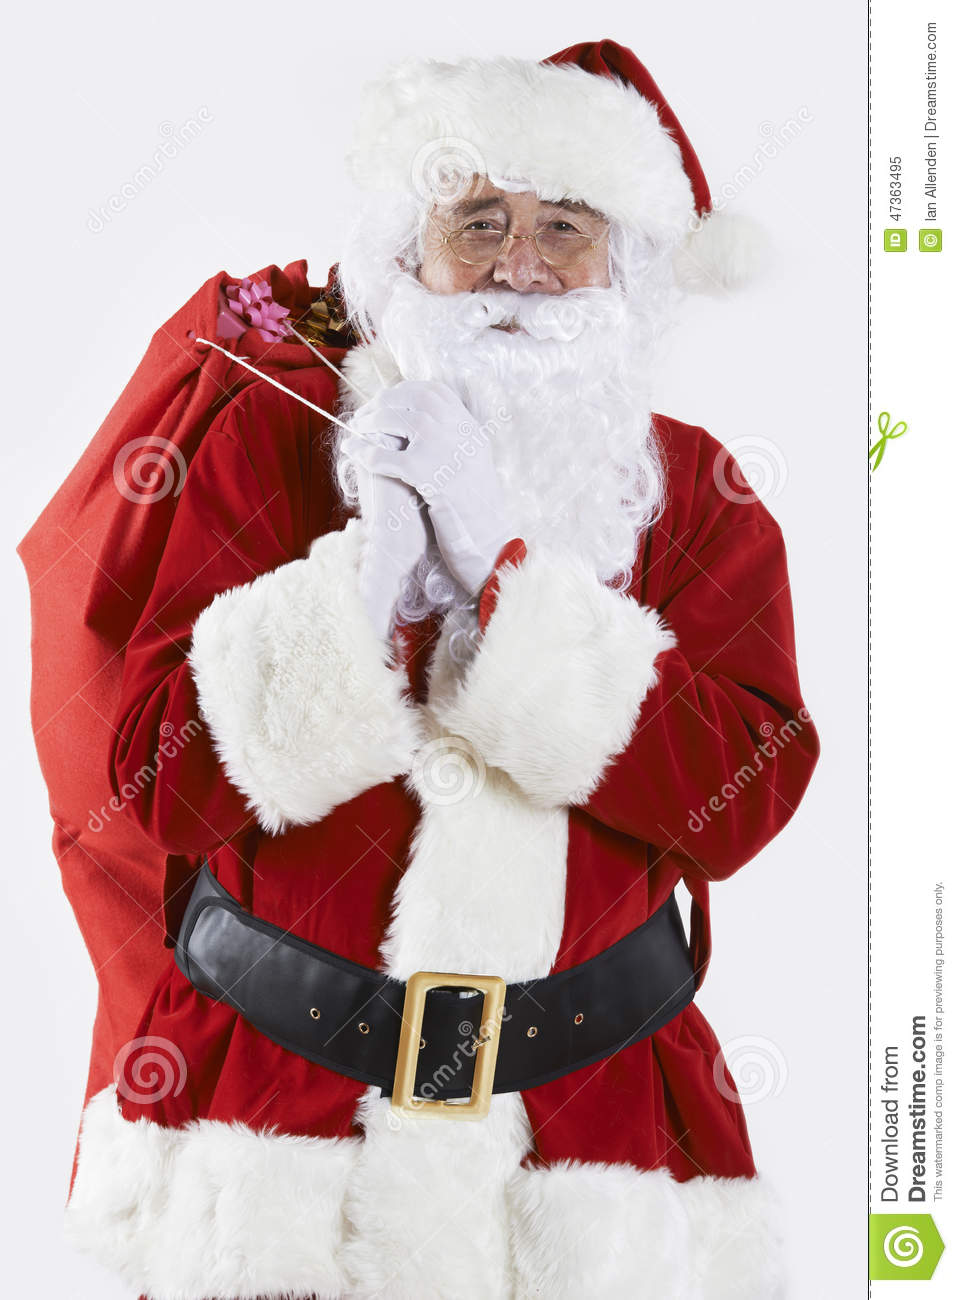 Santa claus holding carrying sack with gifts royalty free